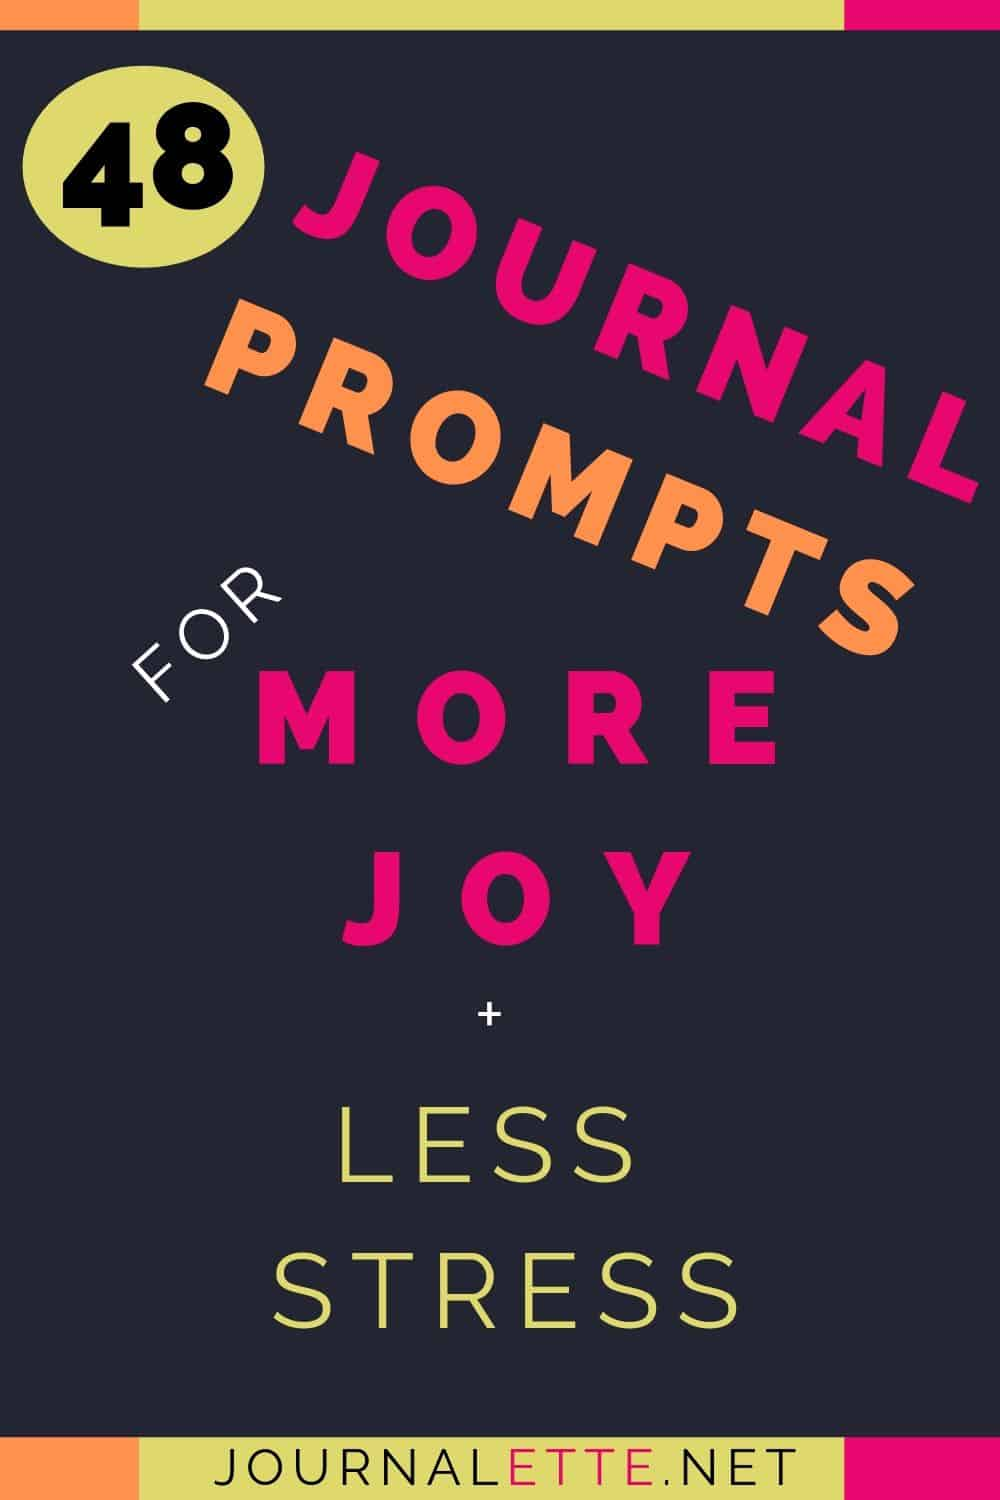 Image with text 48 journal prompts for more joy and less stress